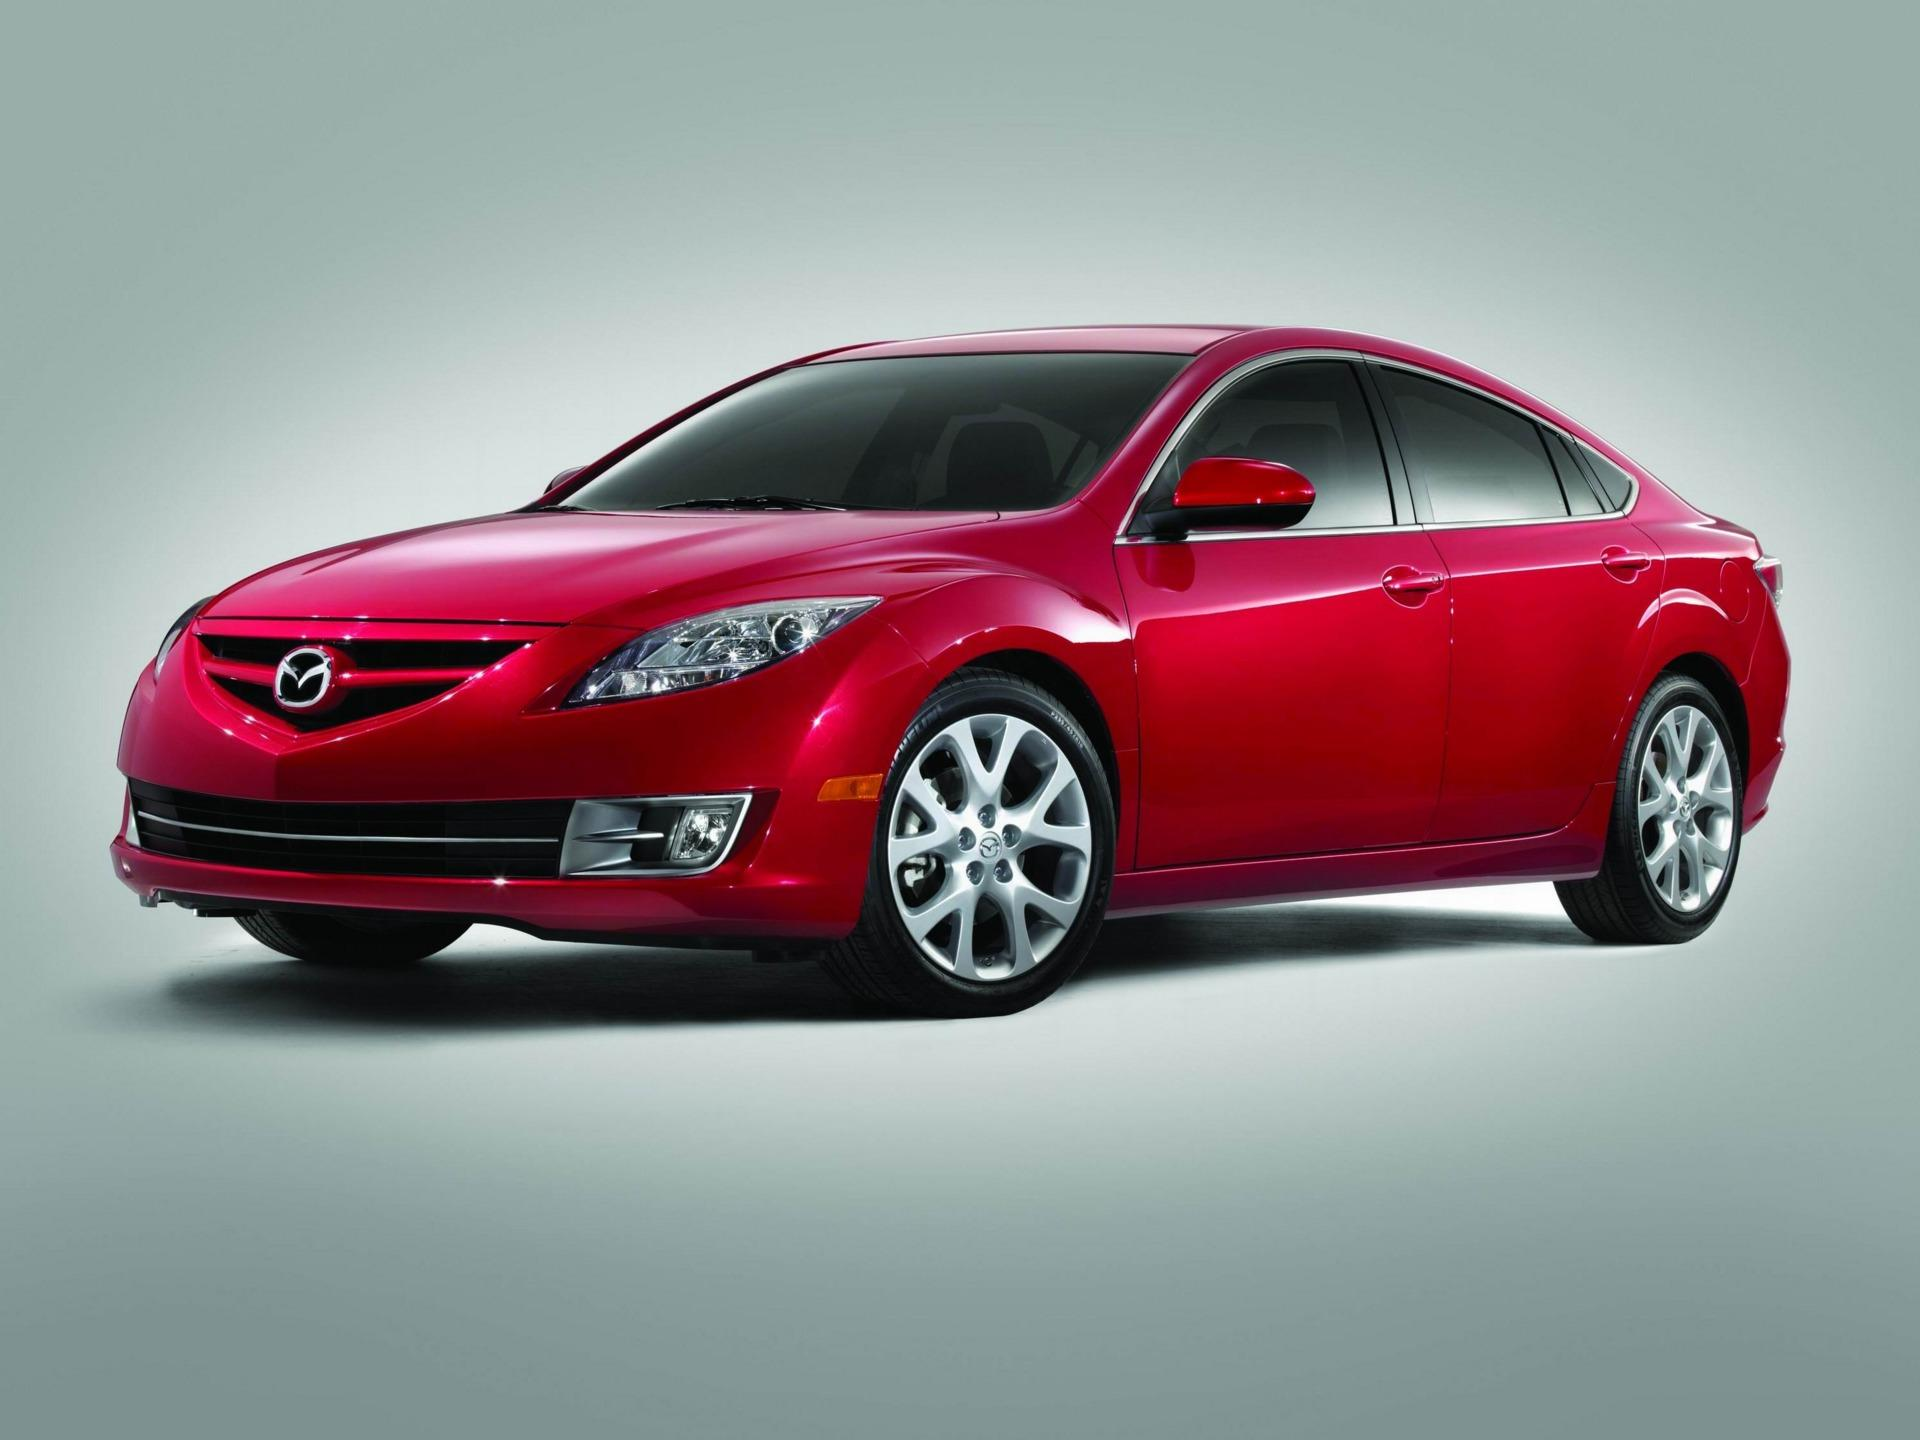 2009 mazda 6 technical specifications and data engine. Black Bedroom Furniture Sets. Home Design Ideas